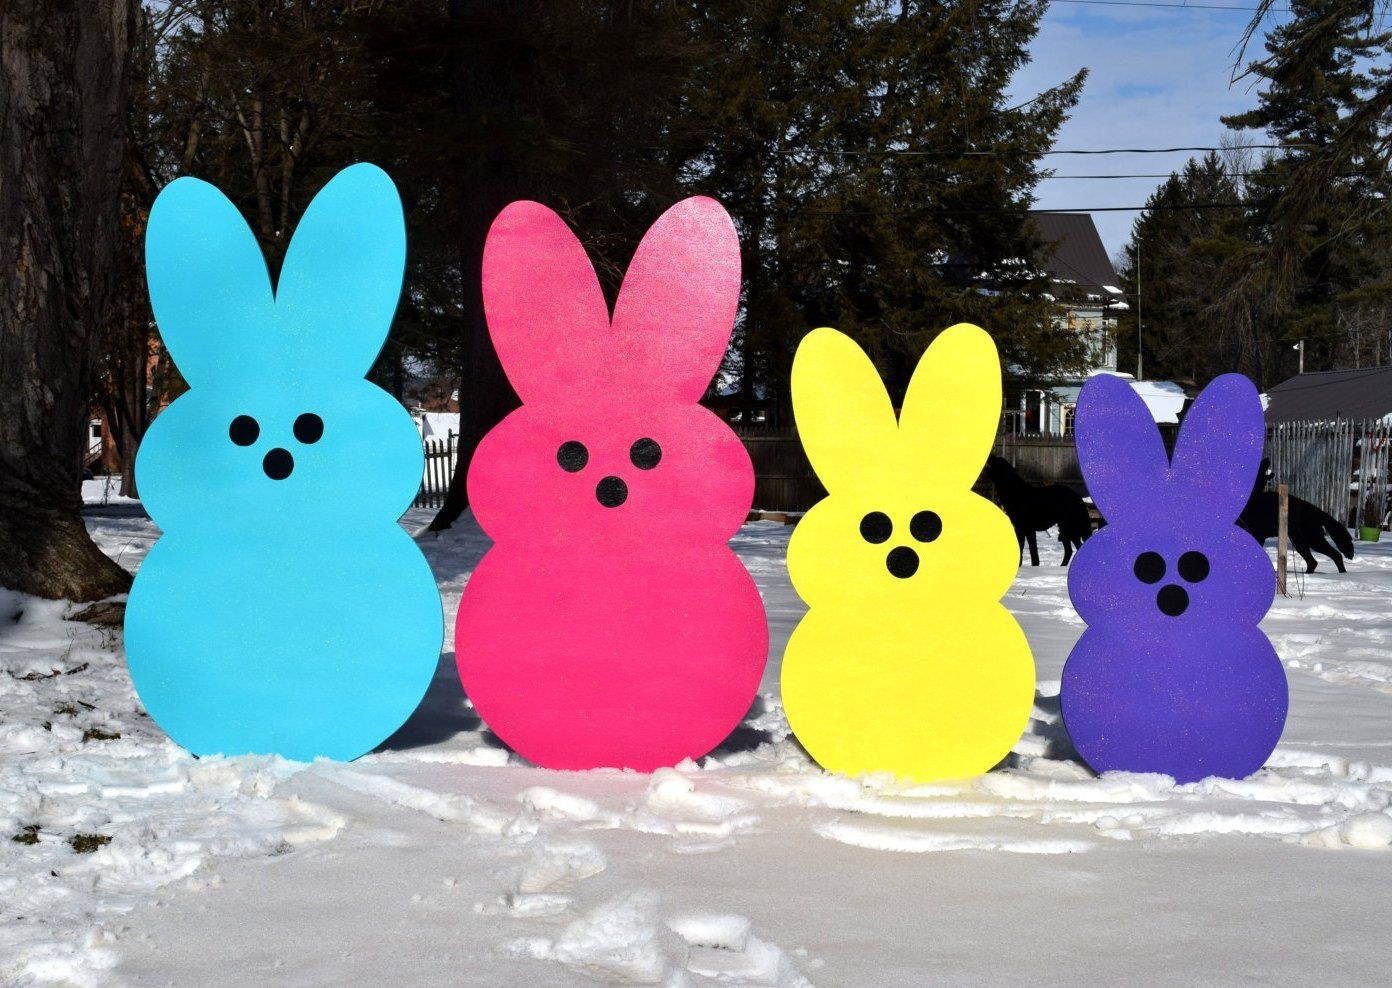 Giant Easter Bunny Peeps Outdoor Easter Decoration Painted Wood Yard Art Easter Bunny Rabbit Peeps Garden Stake Lawn Yard Stakes Easter Yard Decorations Easter Yard Art Wood Yard Art